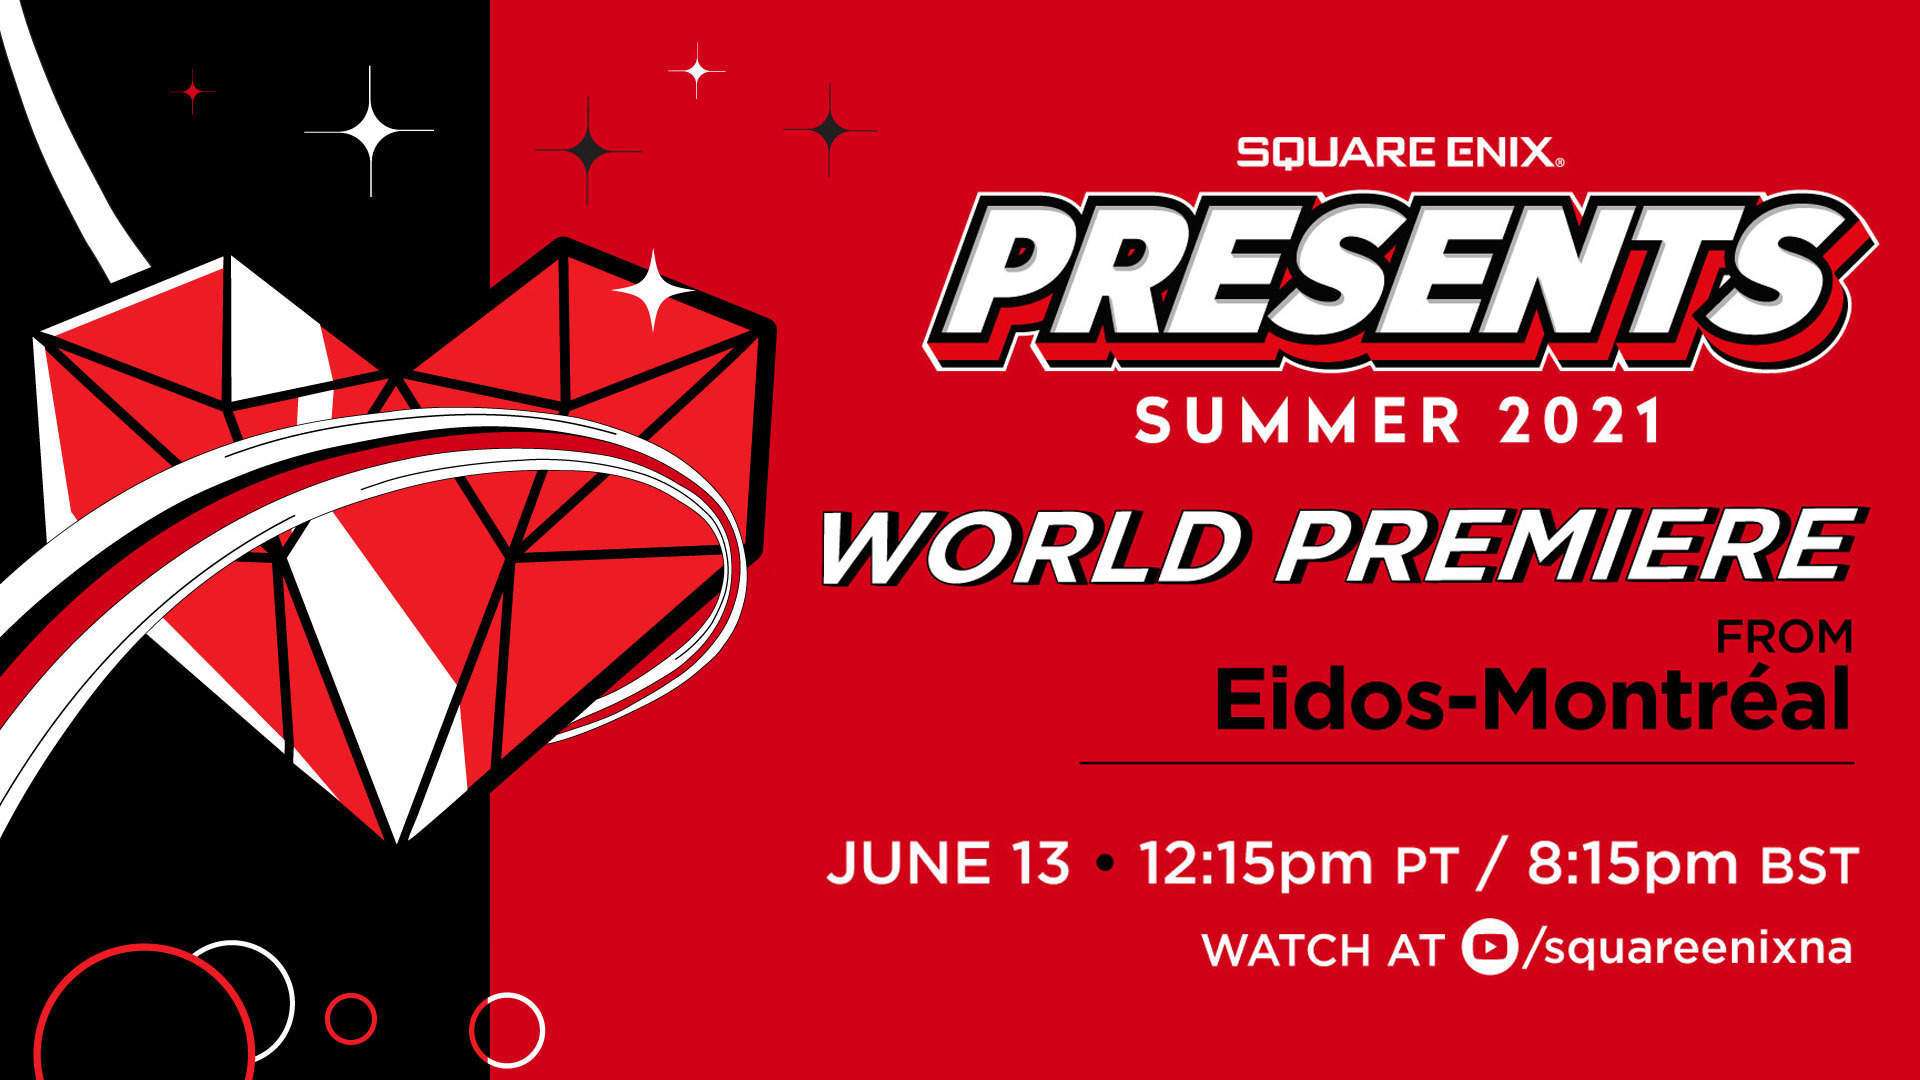 Summer Event Updates: Square Enix, LEGO Con, and more